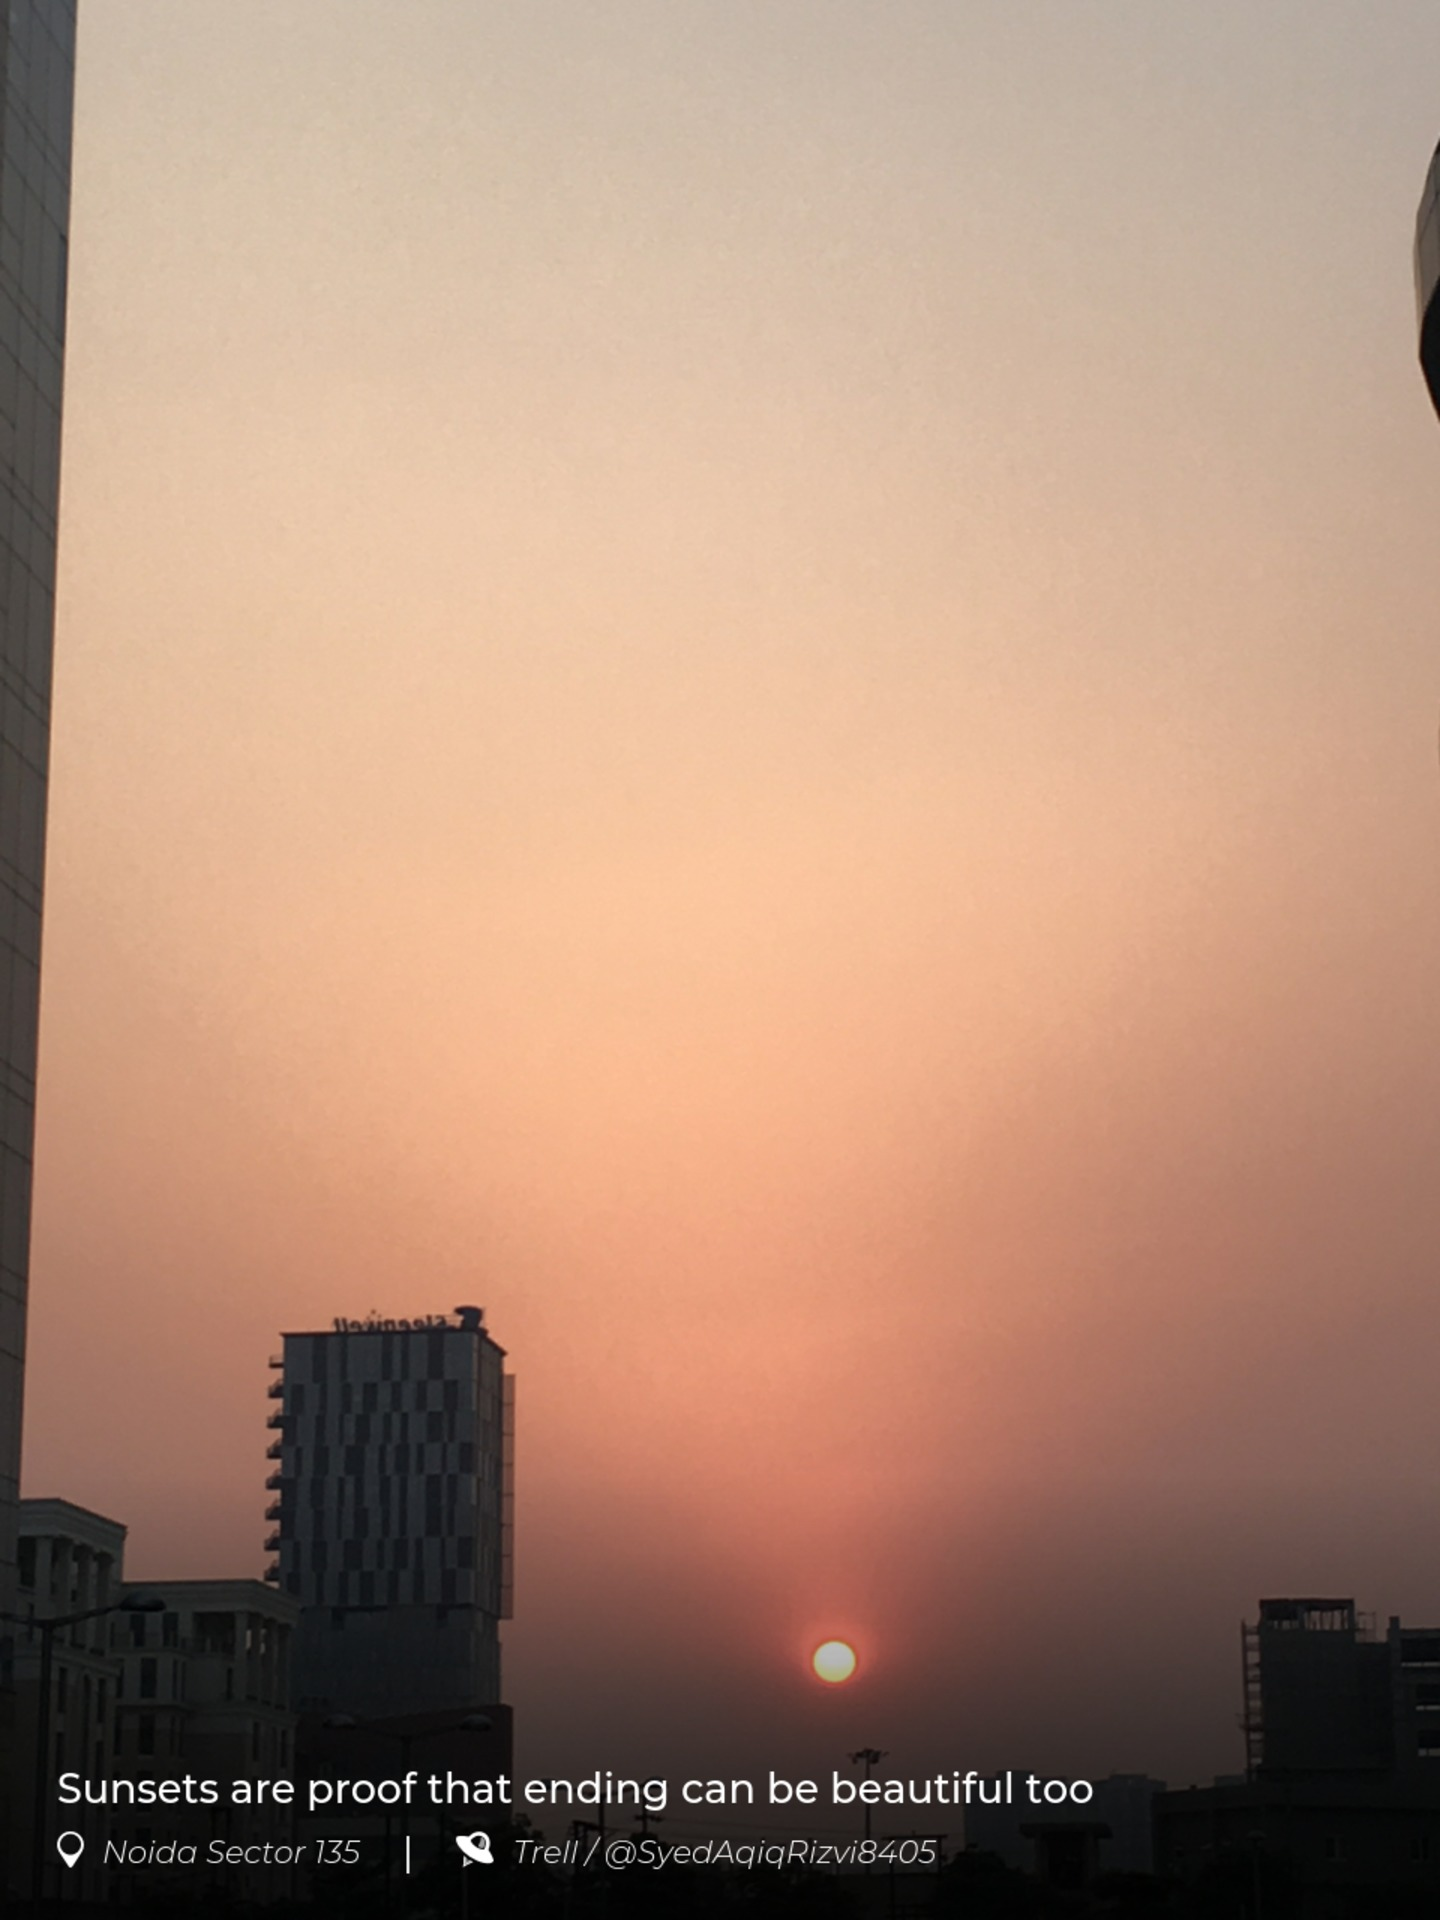 Sunset View image